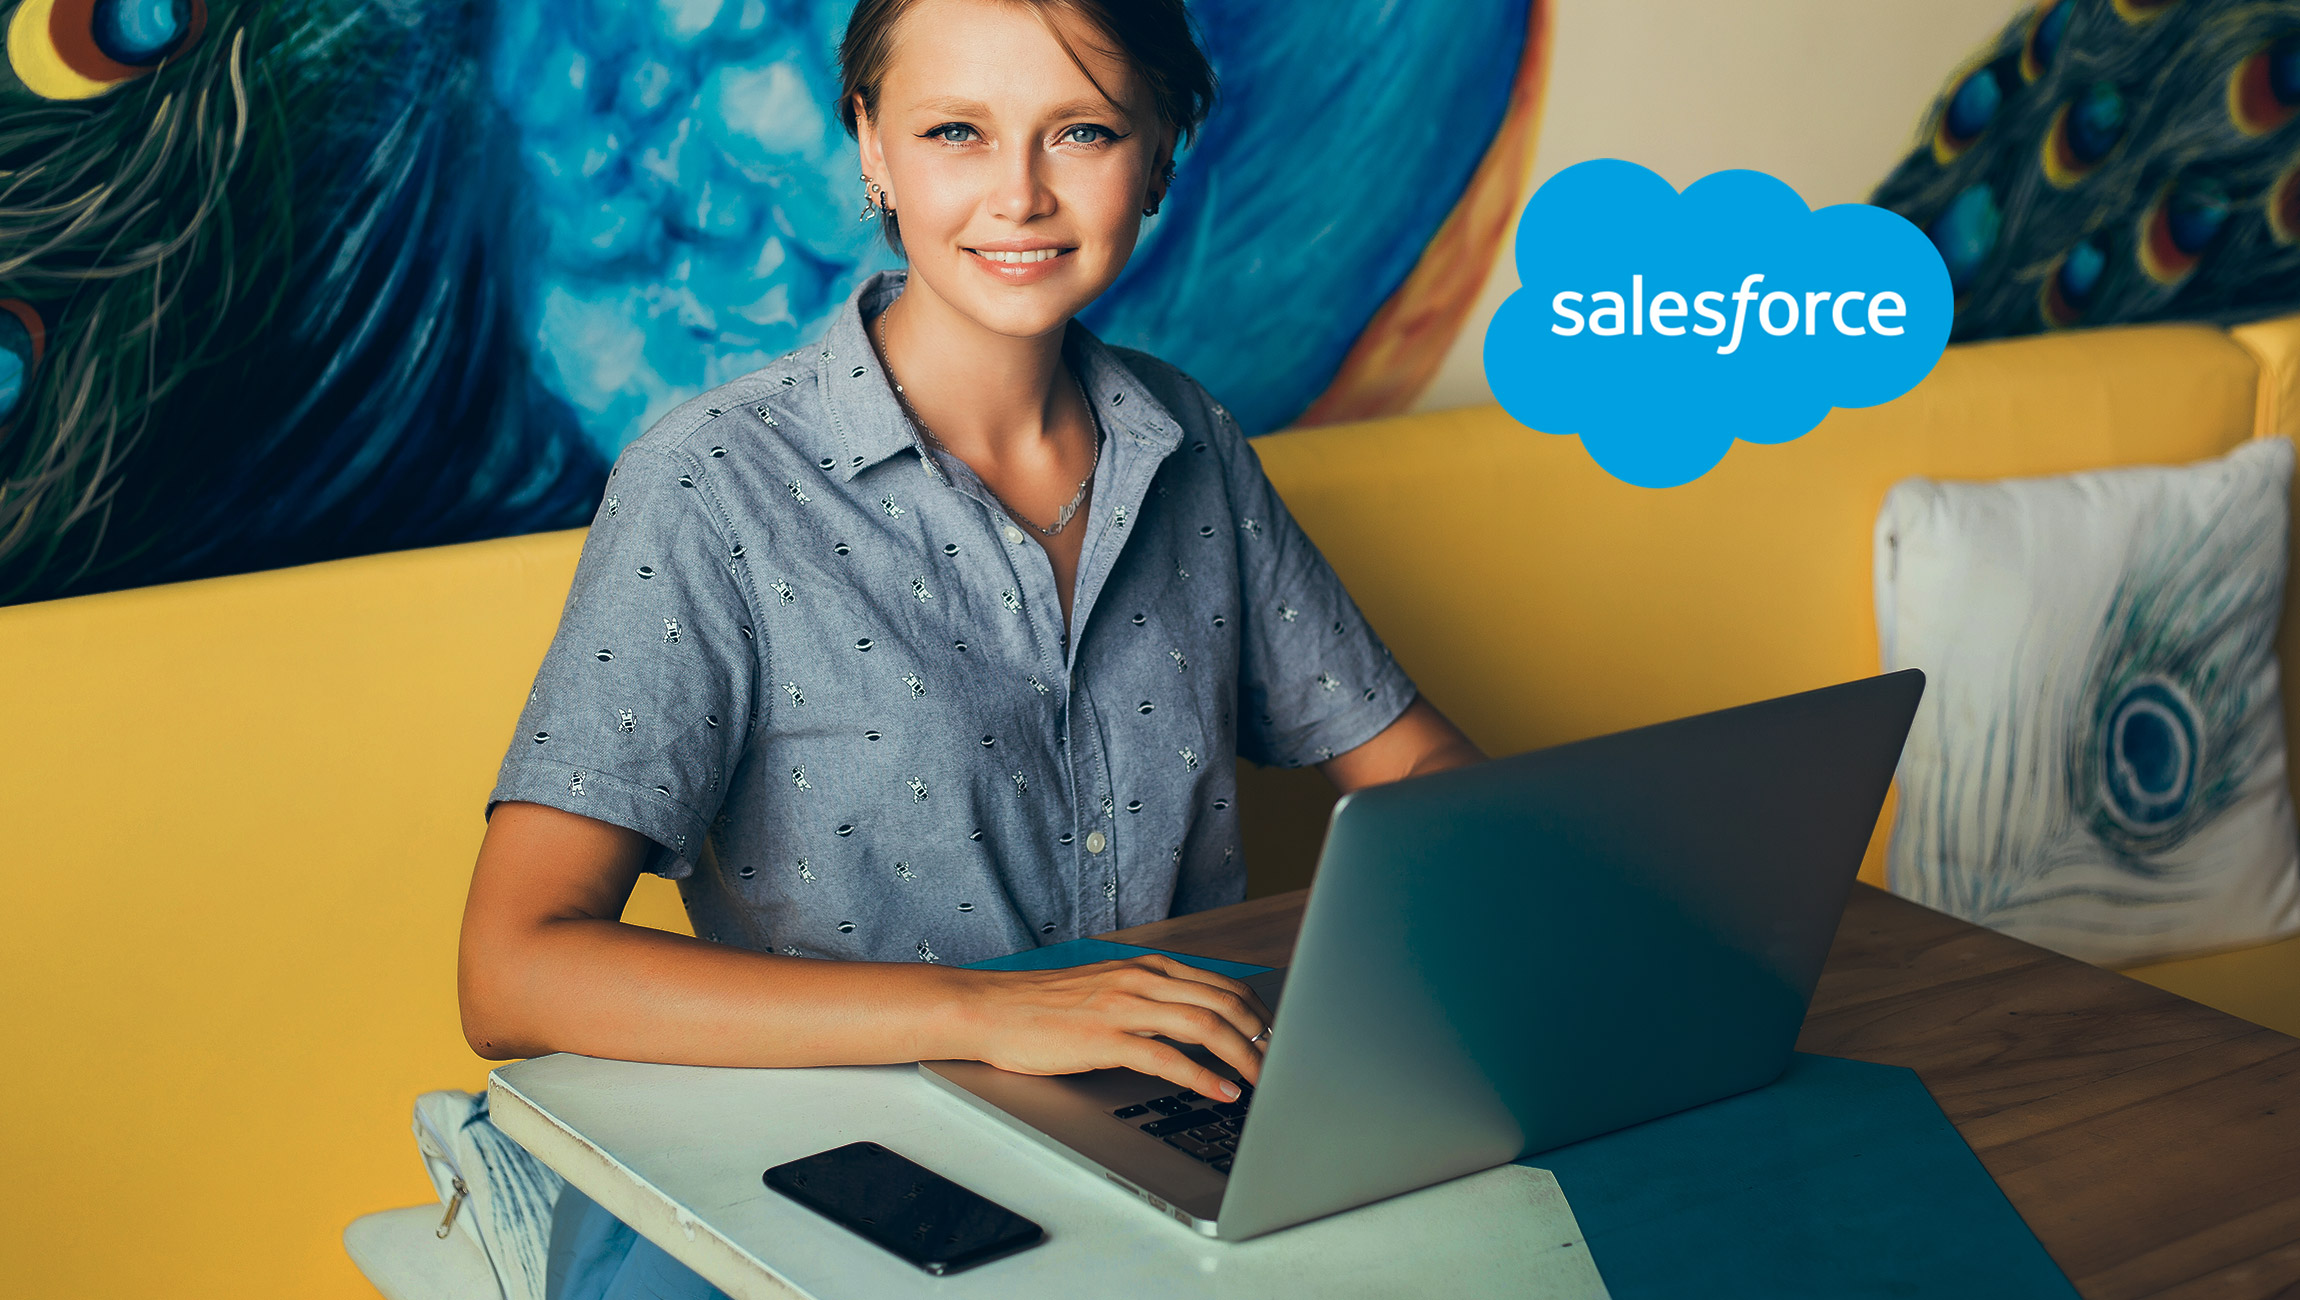 Salesforce Research Reveals Shoppers Online Choices For This Holiday Season